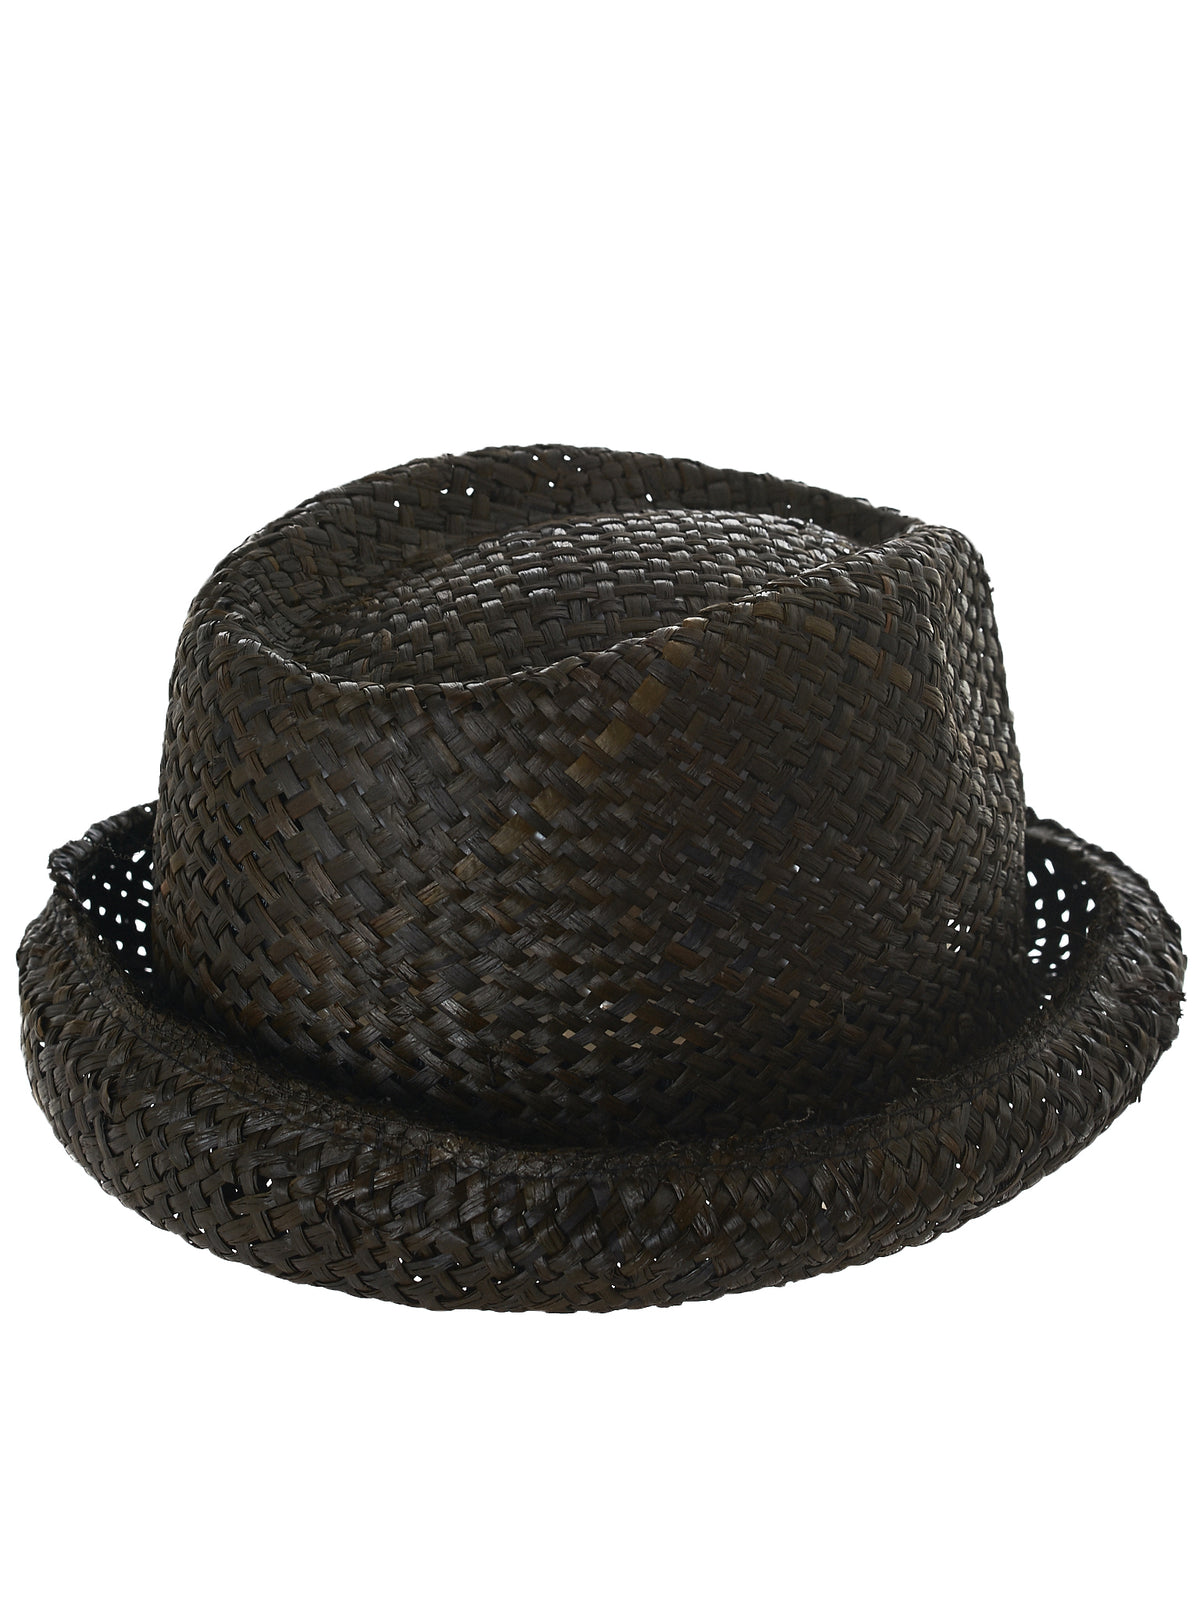 Isabel Benenato Braided Hat - Hlorenzo Detail